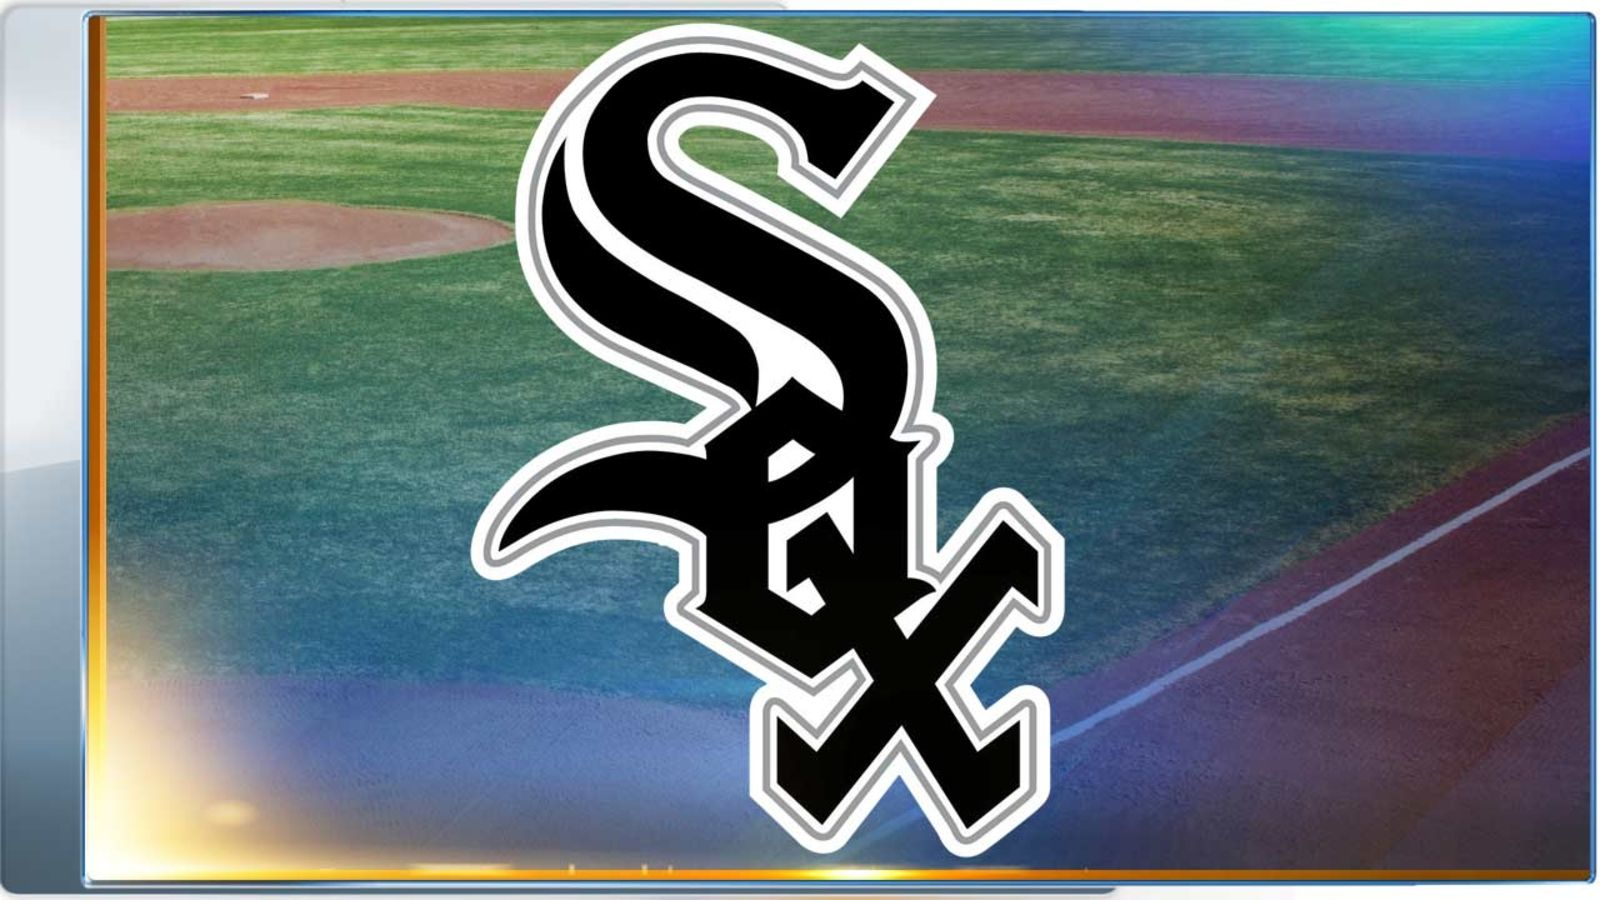 Chicago White Sox unveil new 'Southside' jerseys as part of Nike City Connect Series uniforms